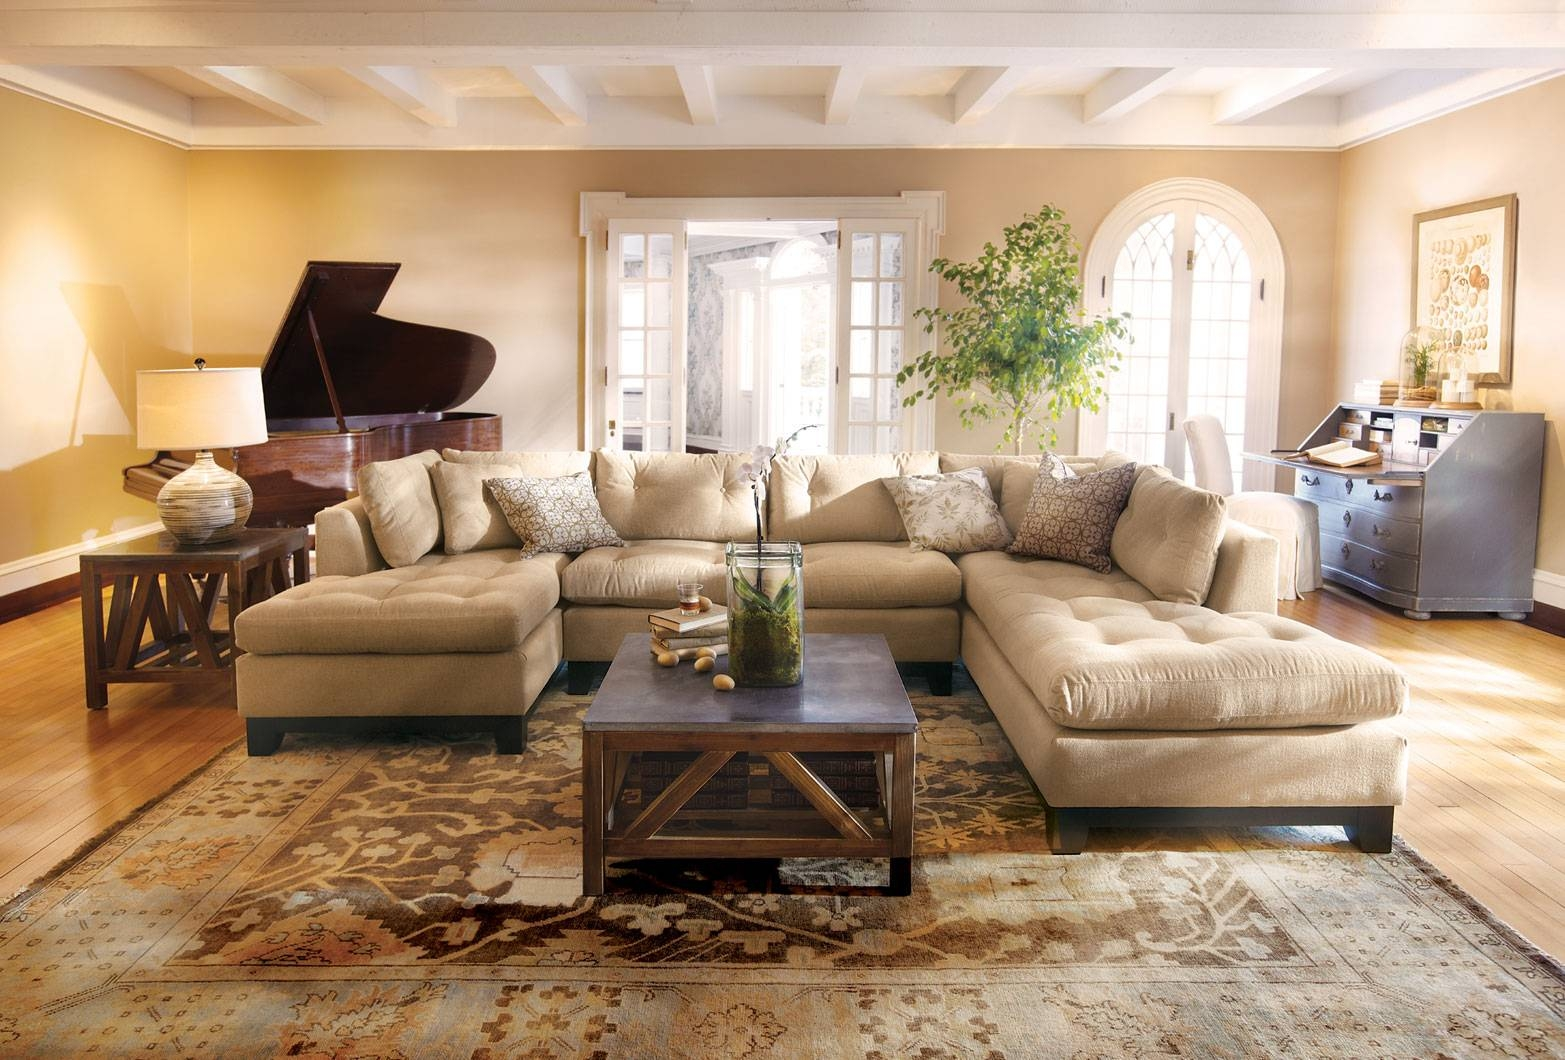 Furniture: Club Sofa Arhaus | Arhaus Coffee Tables | Arhaus Sofa intended for Arhaus Club Sofas (Image 11 of 15)